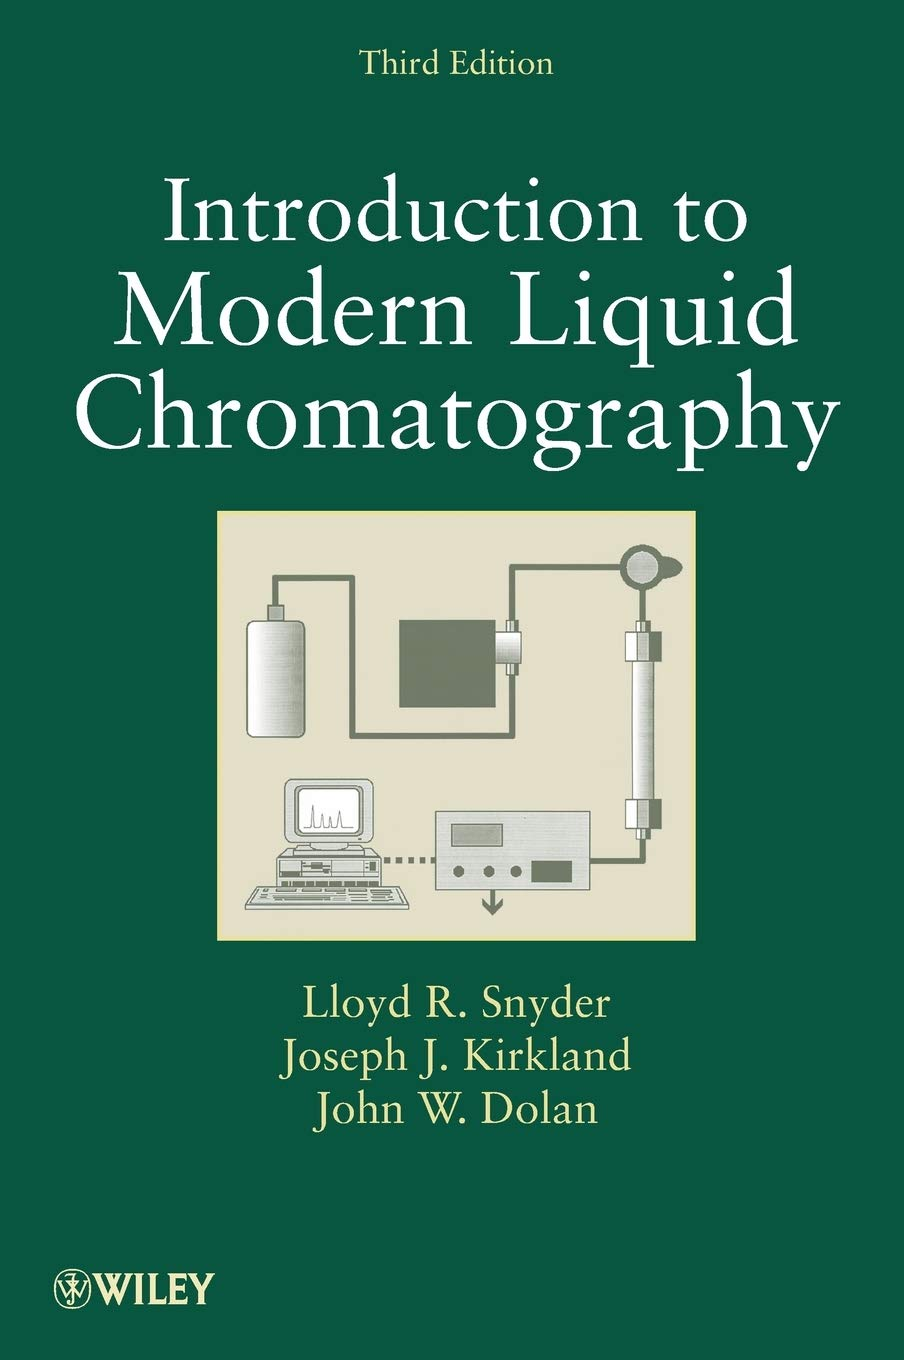 Download Introduction To Modern Liquid Chromatography 